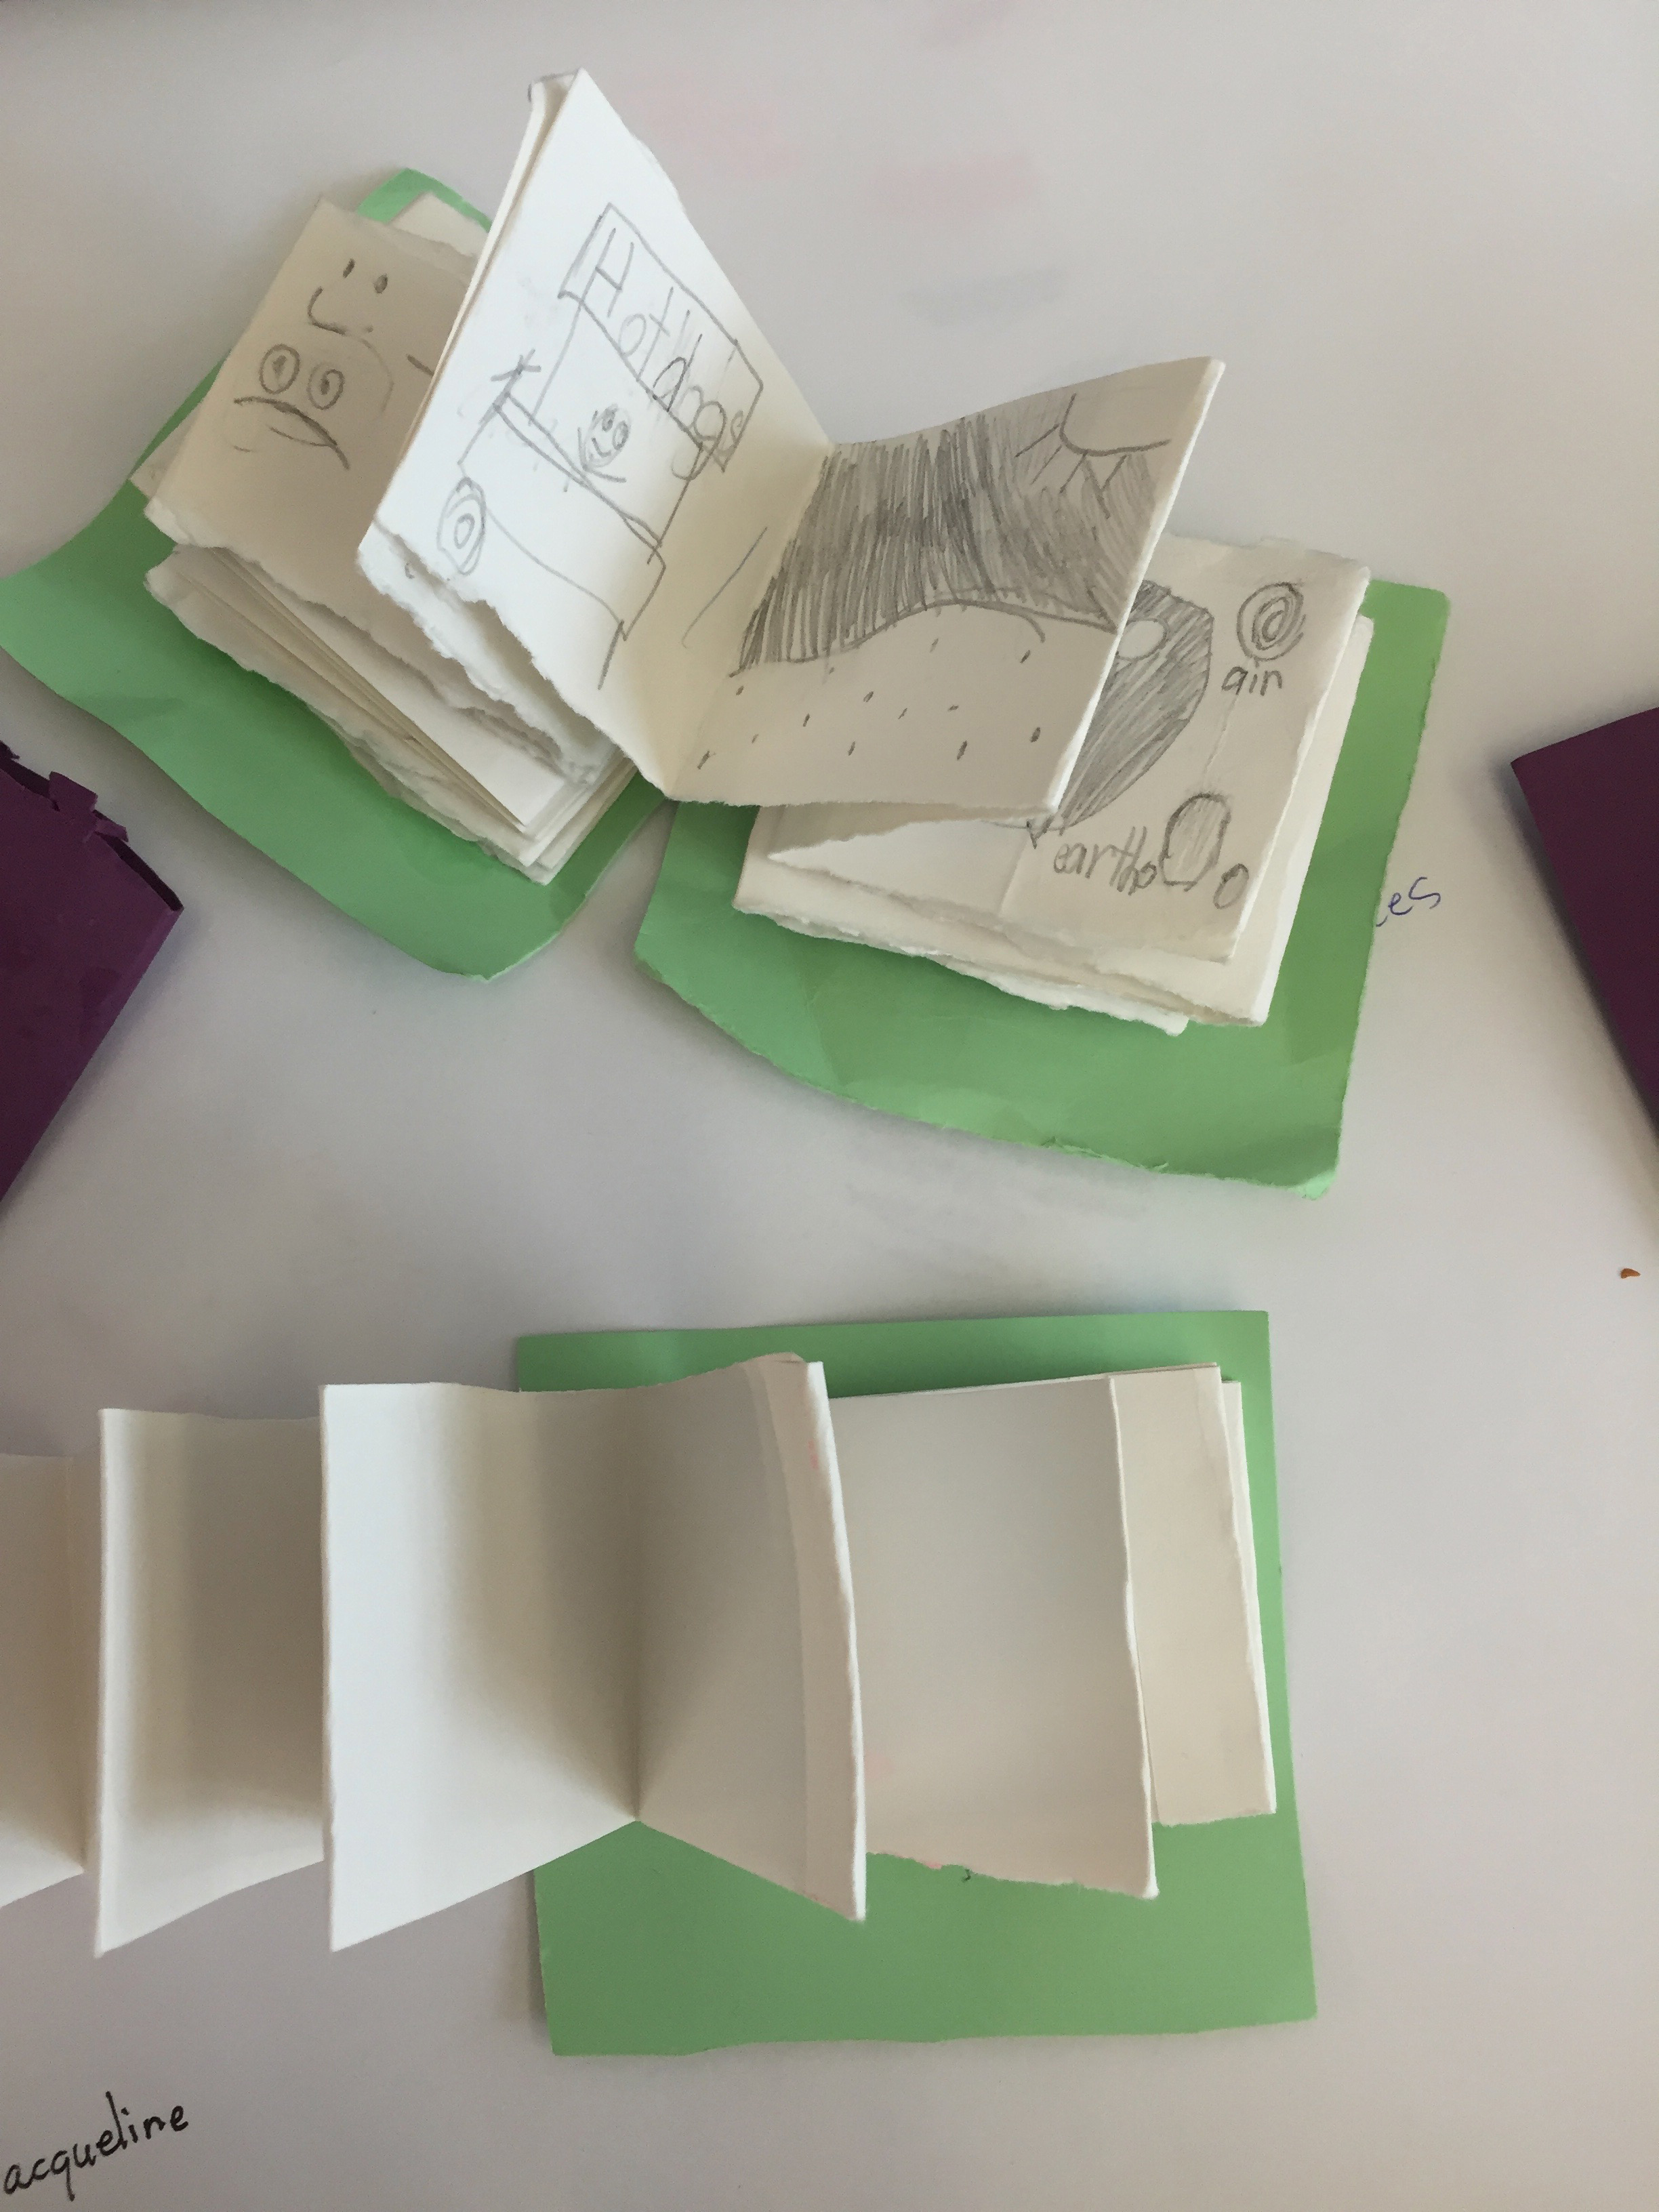 Accordian Fold Books.jpg